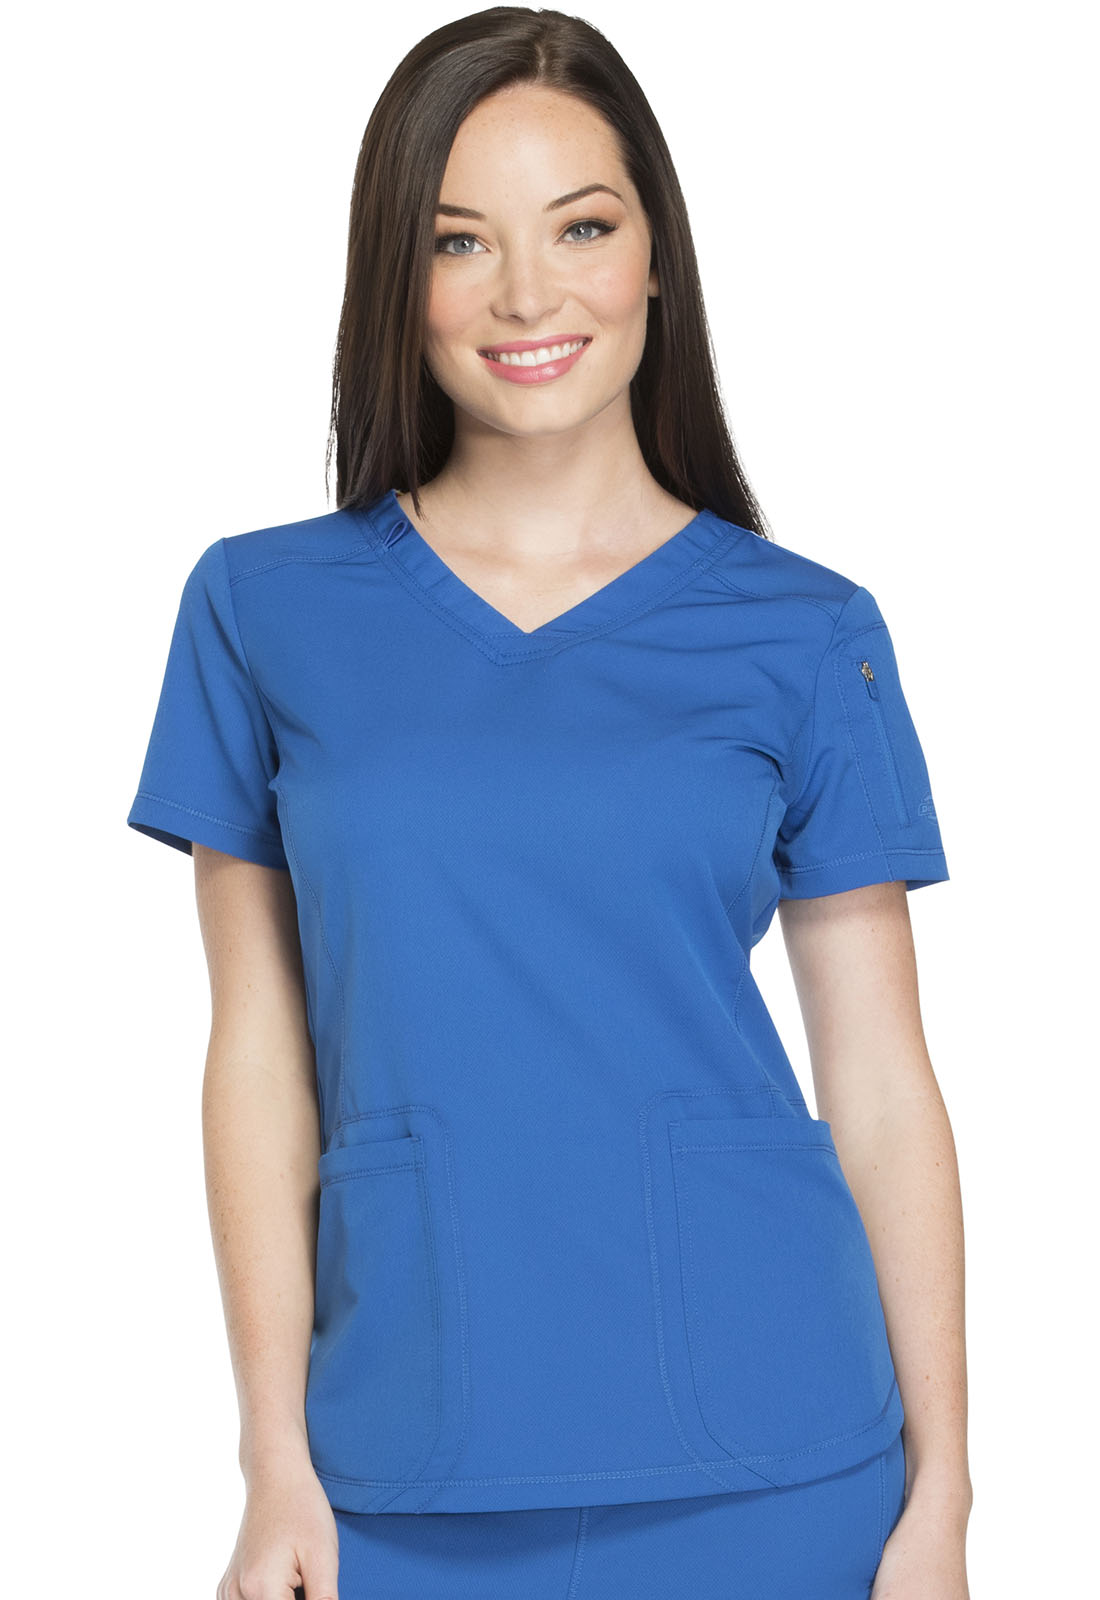 37220420ae6 Dickies Dynamix V-Neck Top in Royal from Dickies Medical